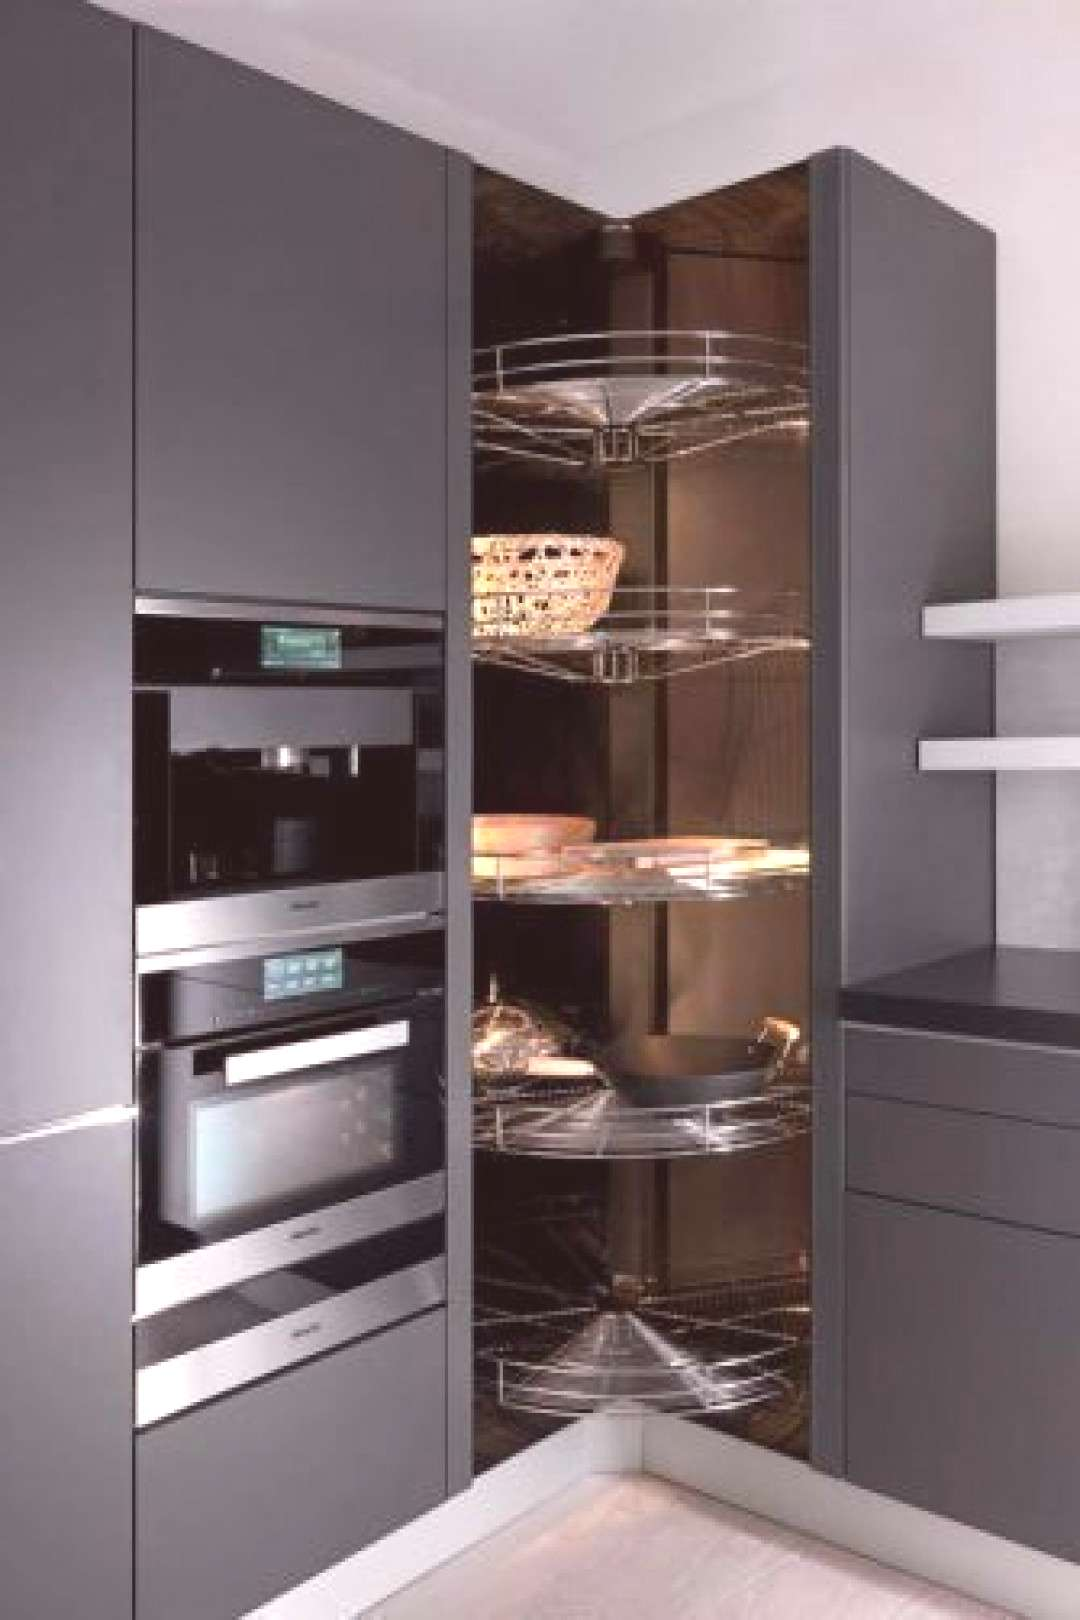 10+ fantastic ideas for kitchen cabinets that last - check more ... - 10+ fantastic ideas for kitc